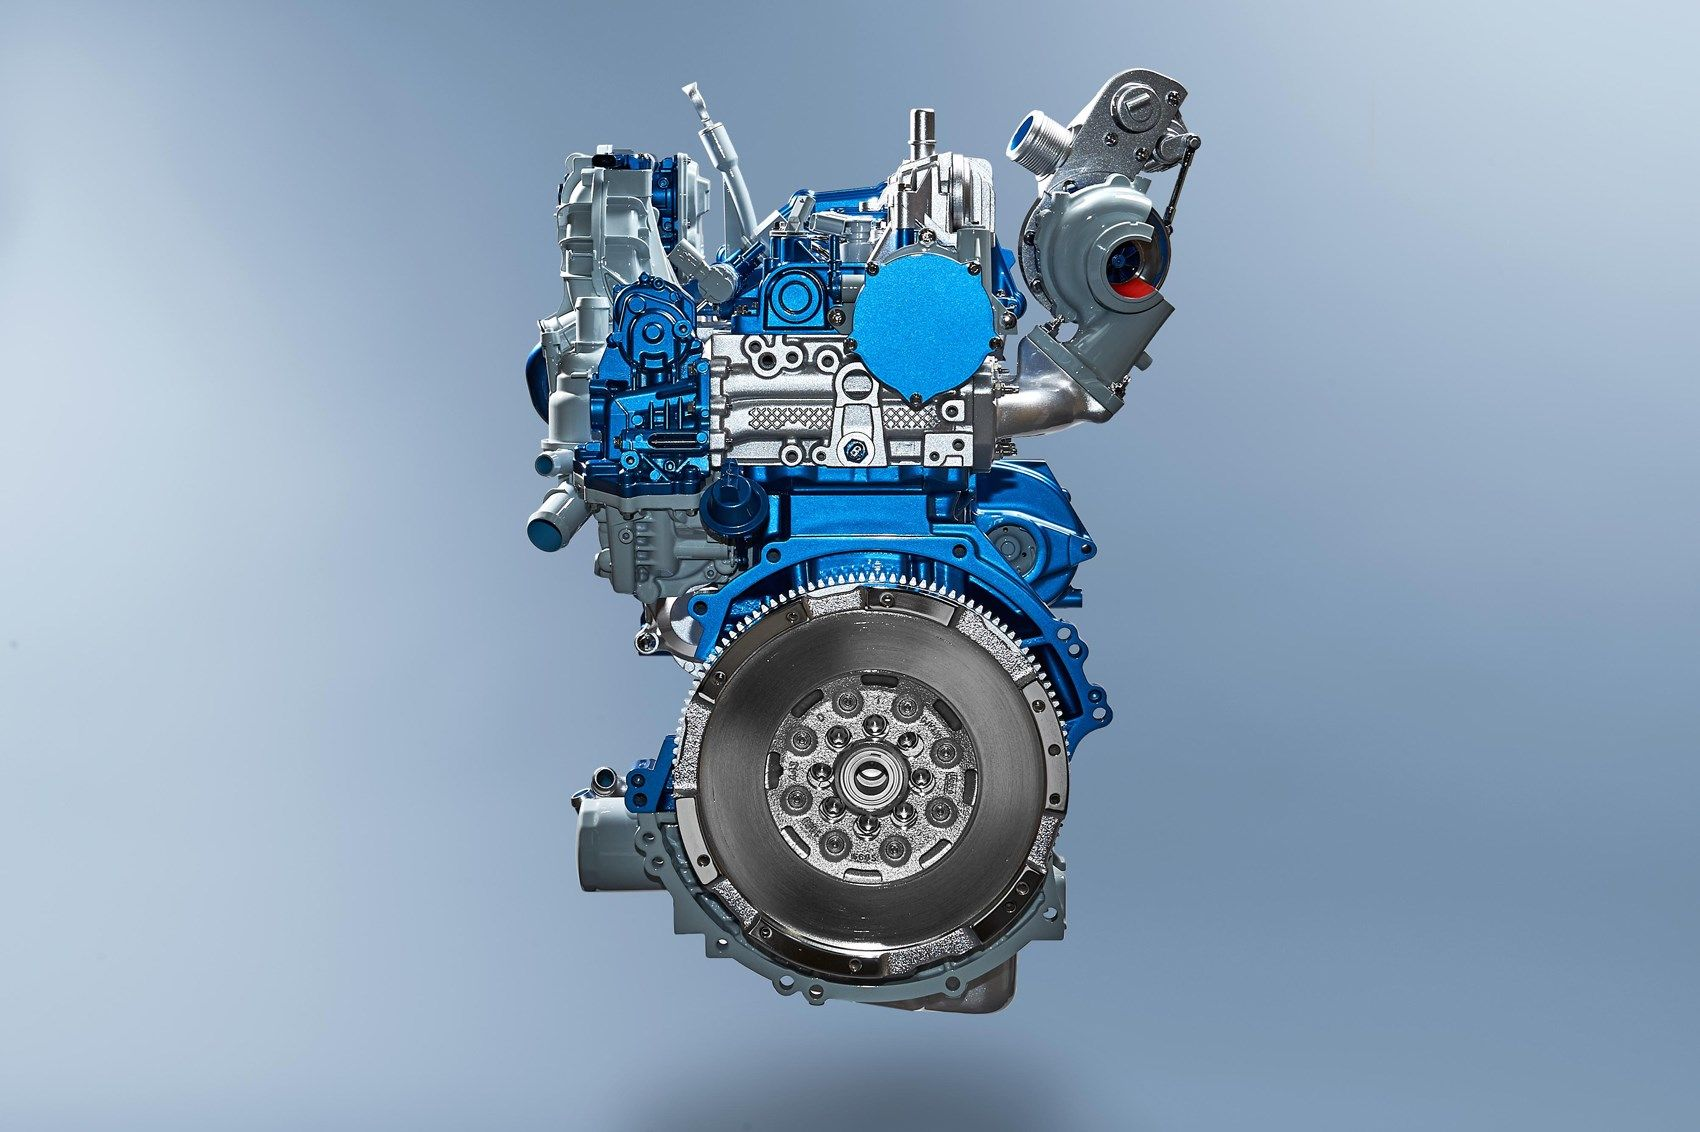 Meet New Ecoblue Engine From Ford The New 2 0 Litre Four Cylinder Diesel Engine Will Be Available In A Range Of Outputs Diesel Engine Suv Accessories Ford